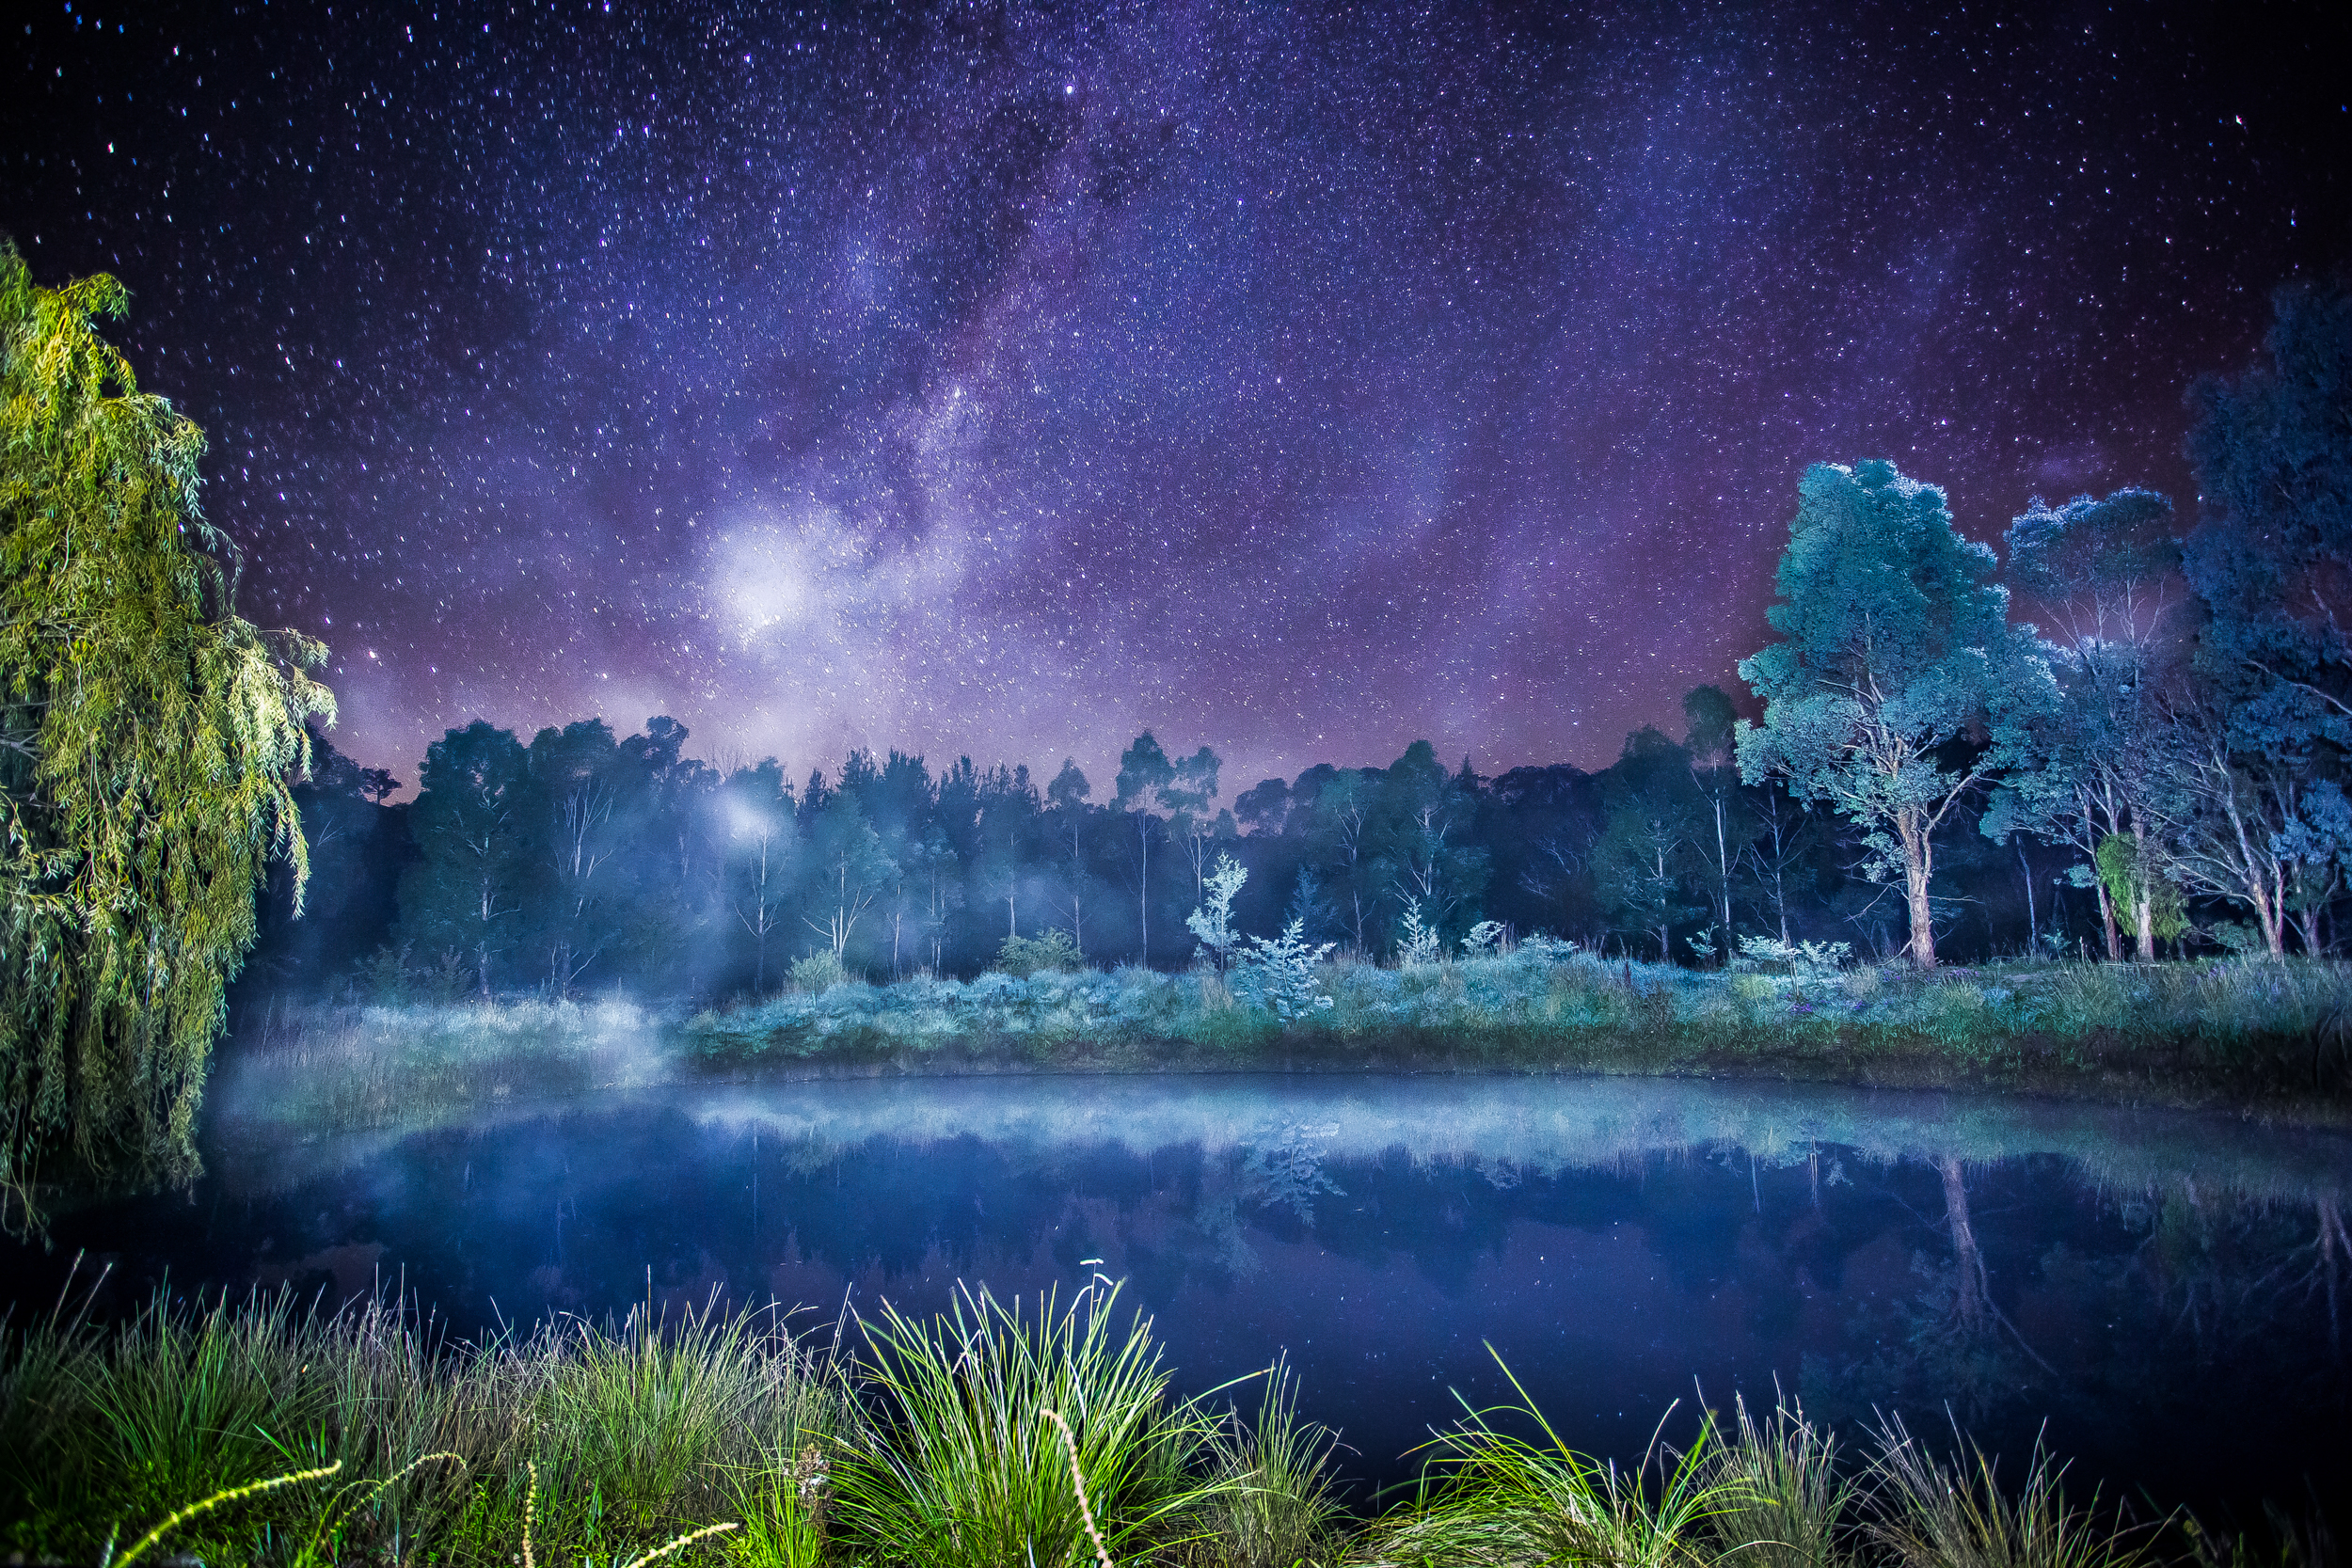 One of my award-winning star photographs I took back in April of the Milkyway reflecting light onto a small dam. The temperature was close to 0 if not below and the water was creating fog which was rising from the dam and slowly drifting away.